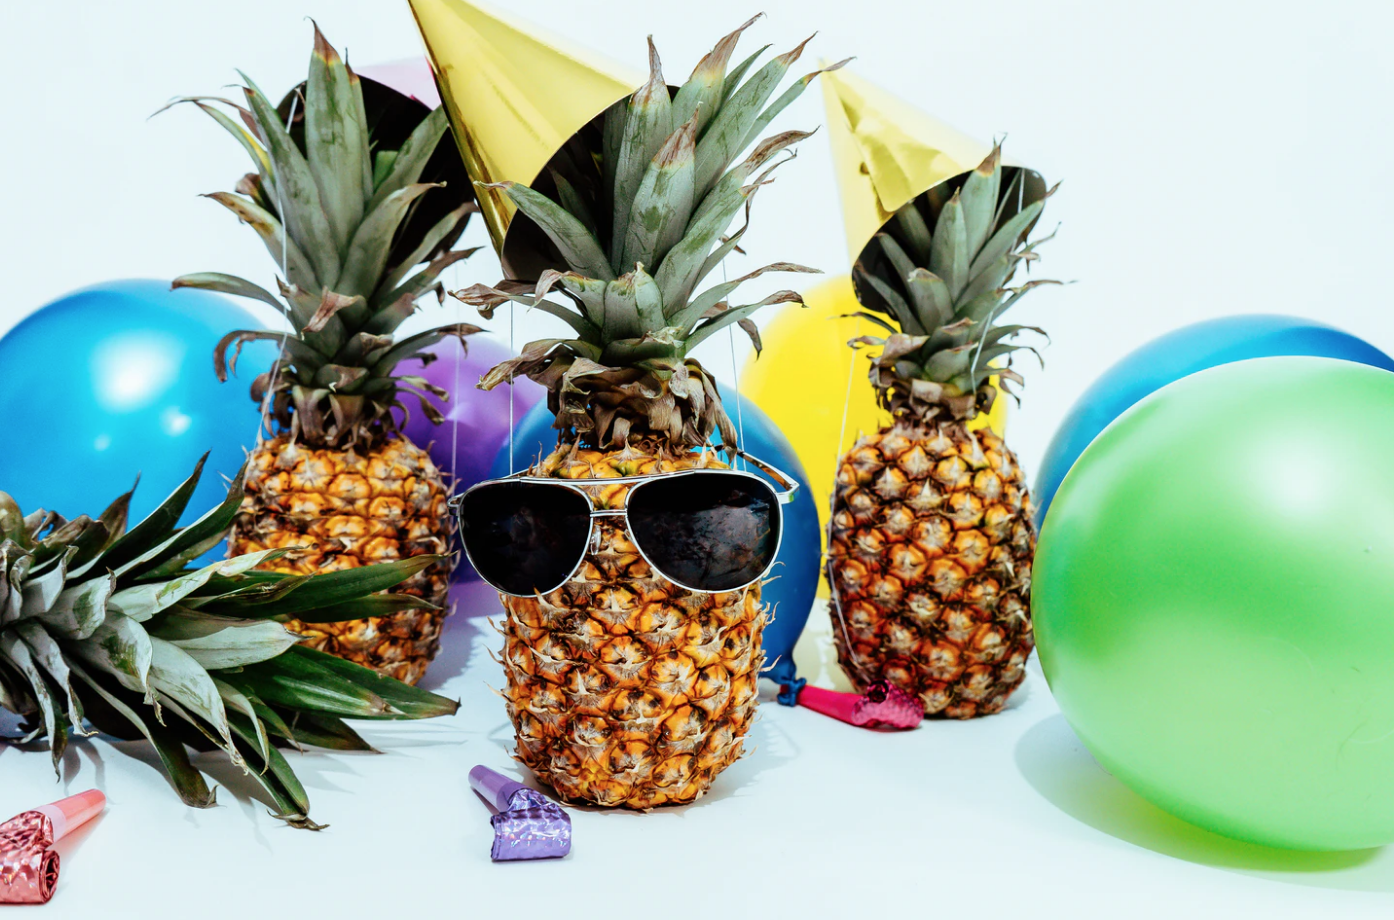 events at simon fraser university pineapples with sunglasses